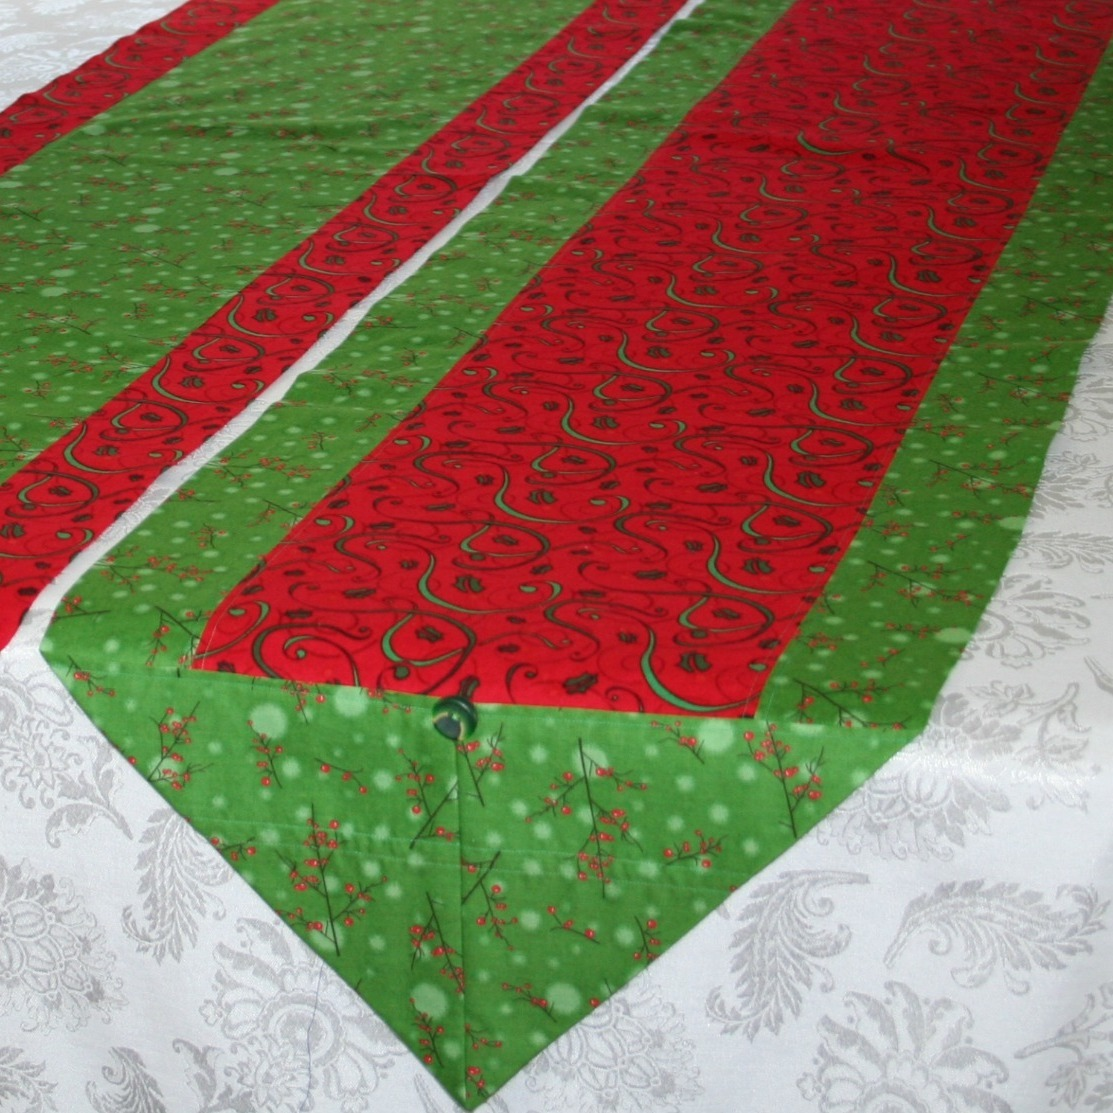 DIY Christmas Gifts: table runner